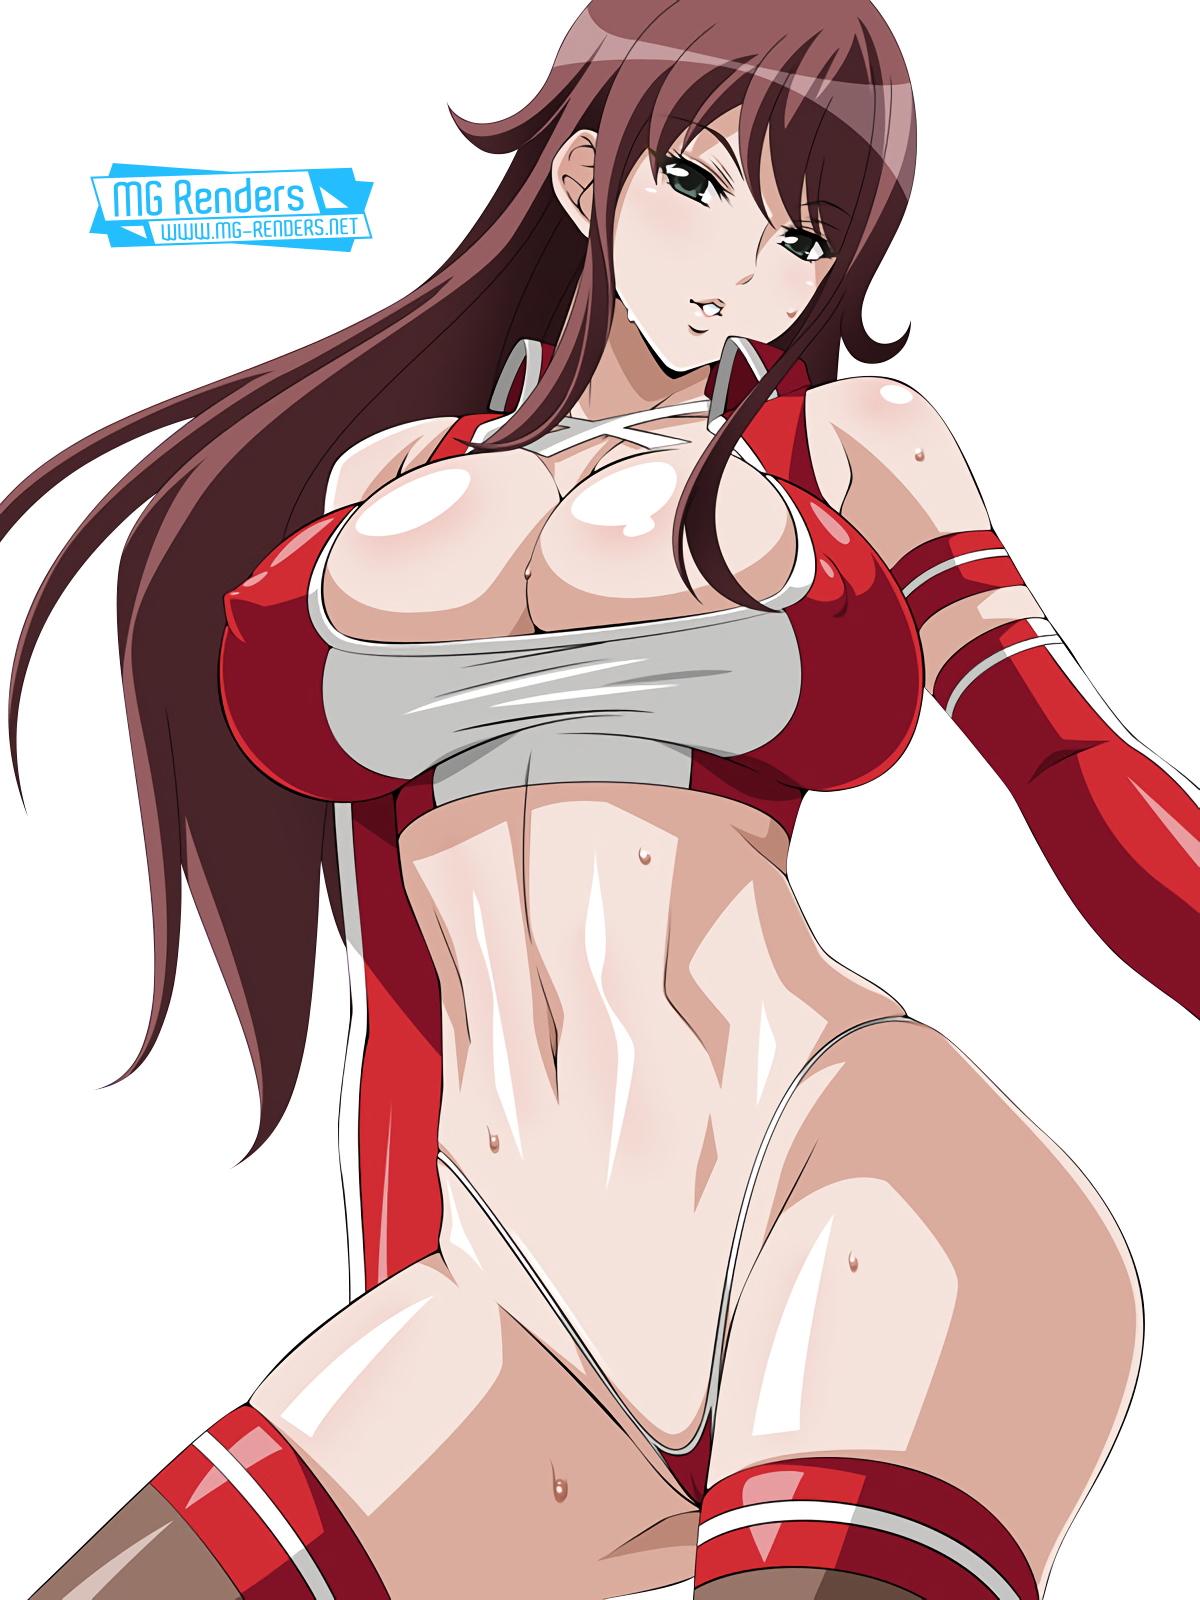 Tags: Anime, Render,  Akana Rui,  Chousoku Henkei Gyrozetter,  Huge Breasts,  PNG, Image, Picture